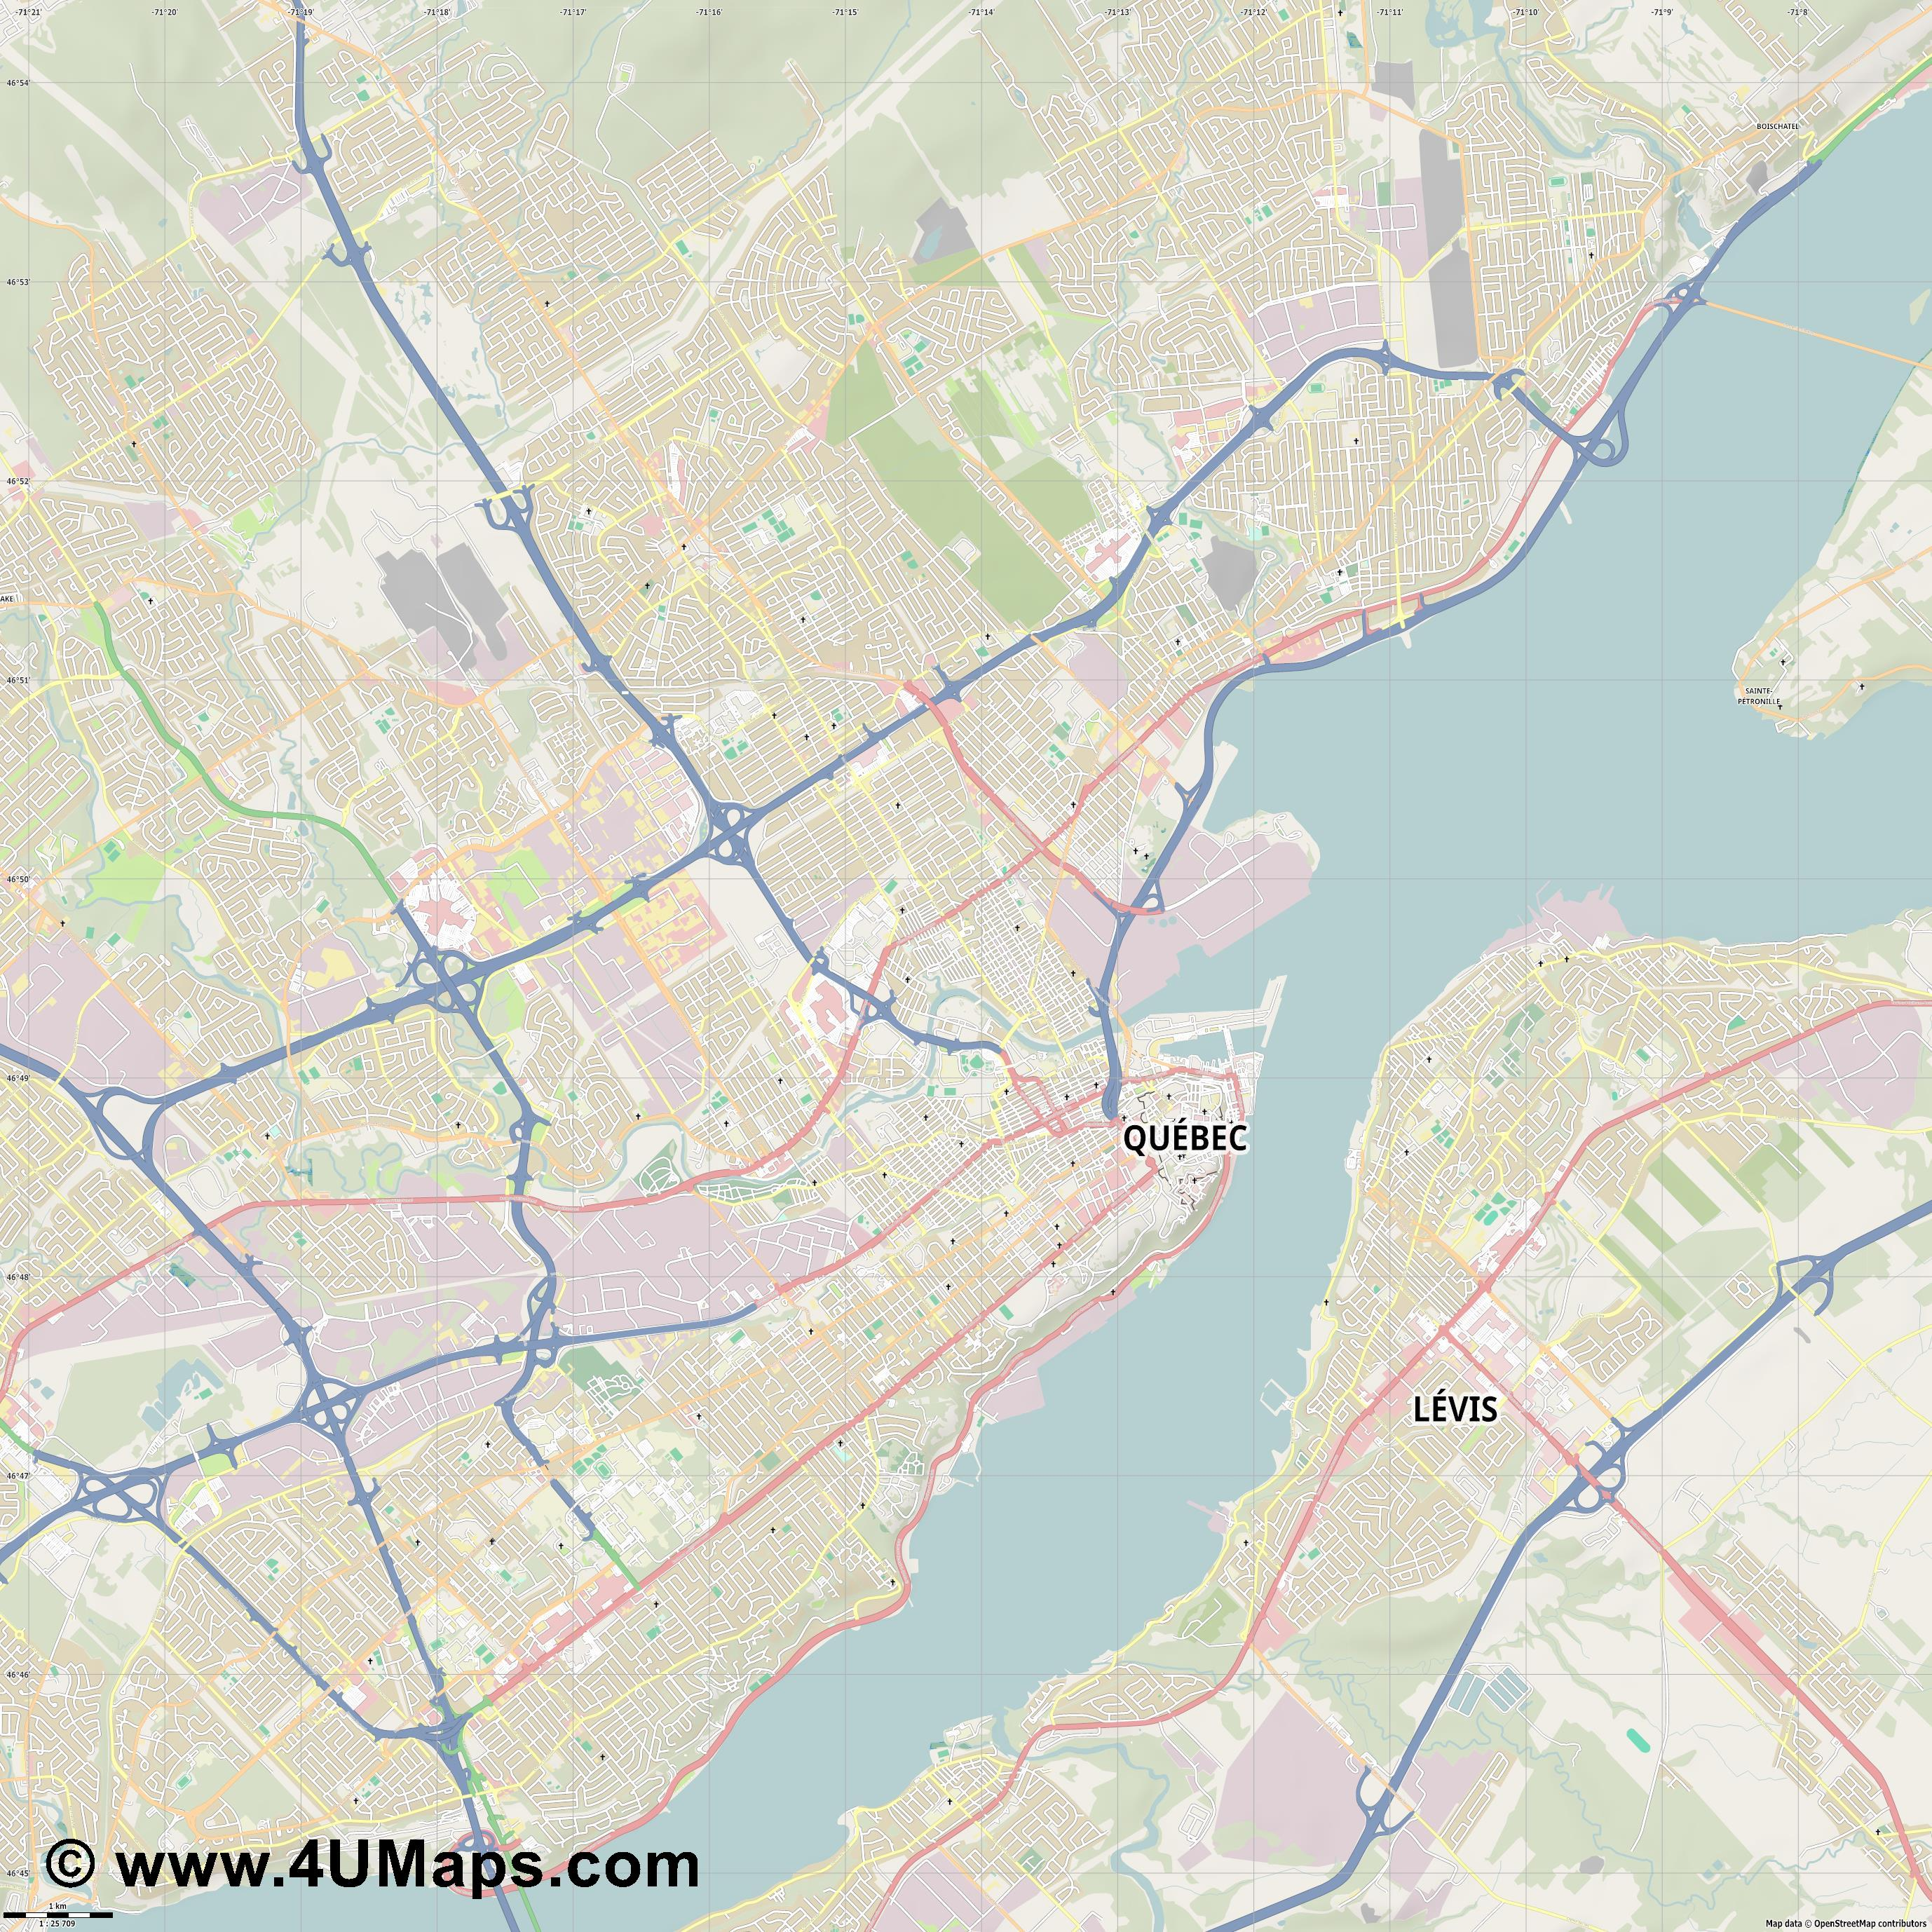 Québec Quebec  jpg high detail, large area preview vector city map